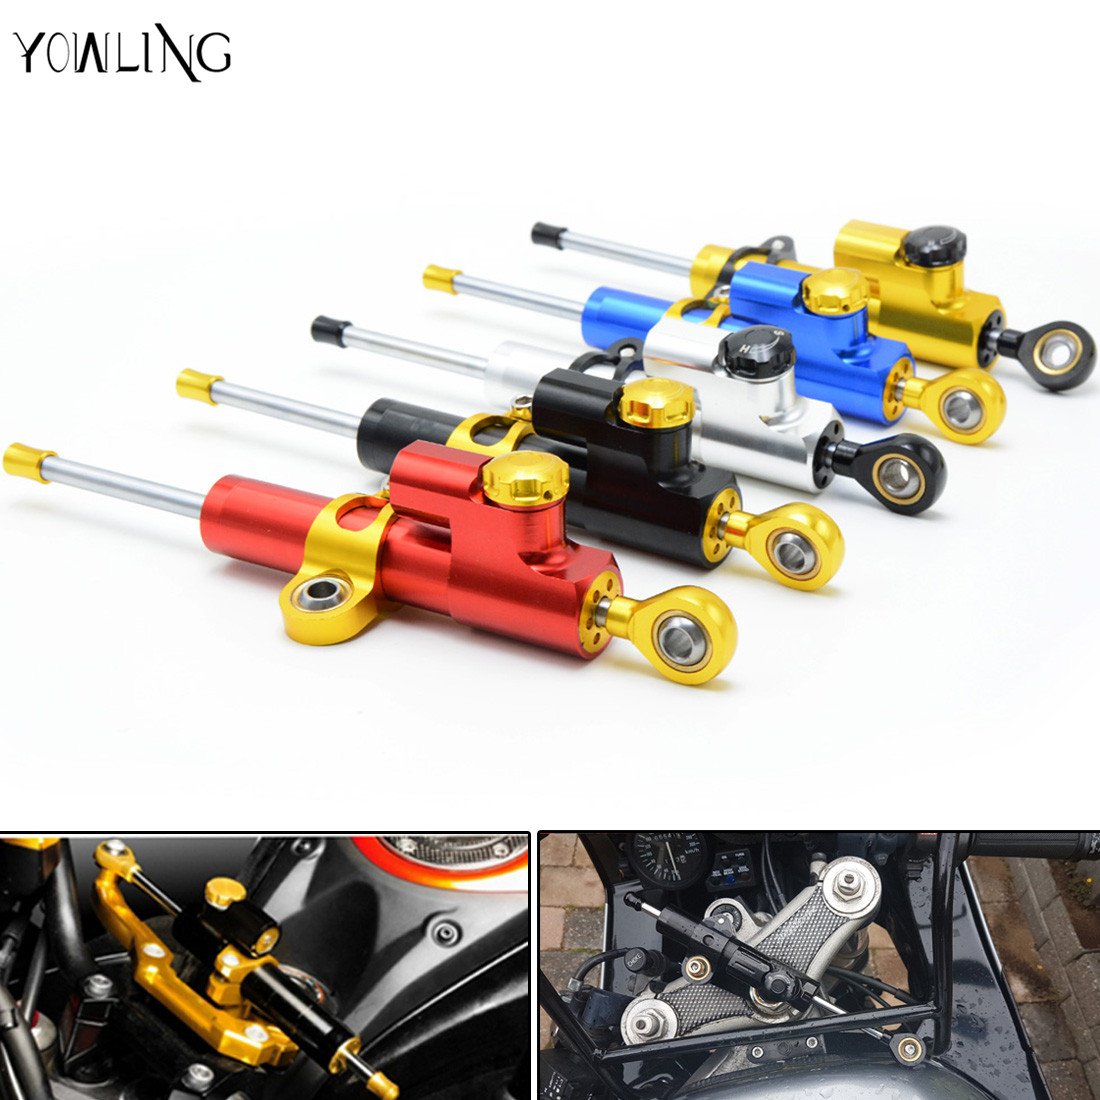 Motorcycle cnc Universal Stabilizer Damper Complete Steering Mounting Bracket For Kawasaki Z1000 Z800 Z750 EX-300 honda Yamaha for kawasaki z750 z800 z 750 z 800 universal motorcycle accessories stabilizer damper steering mounting all year